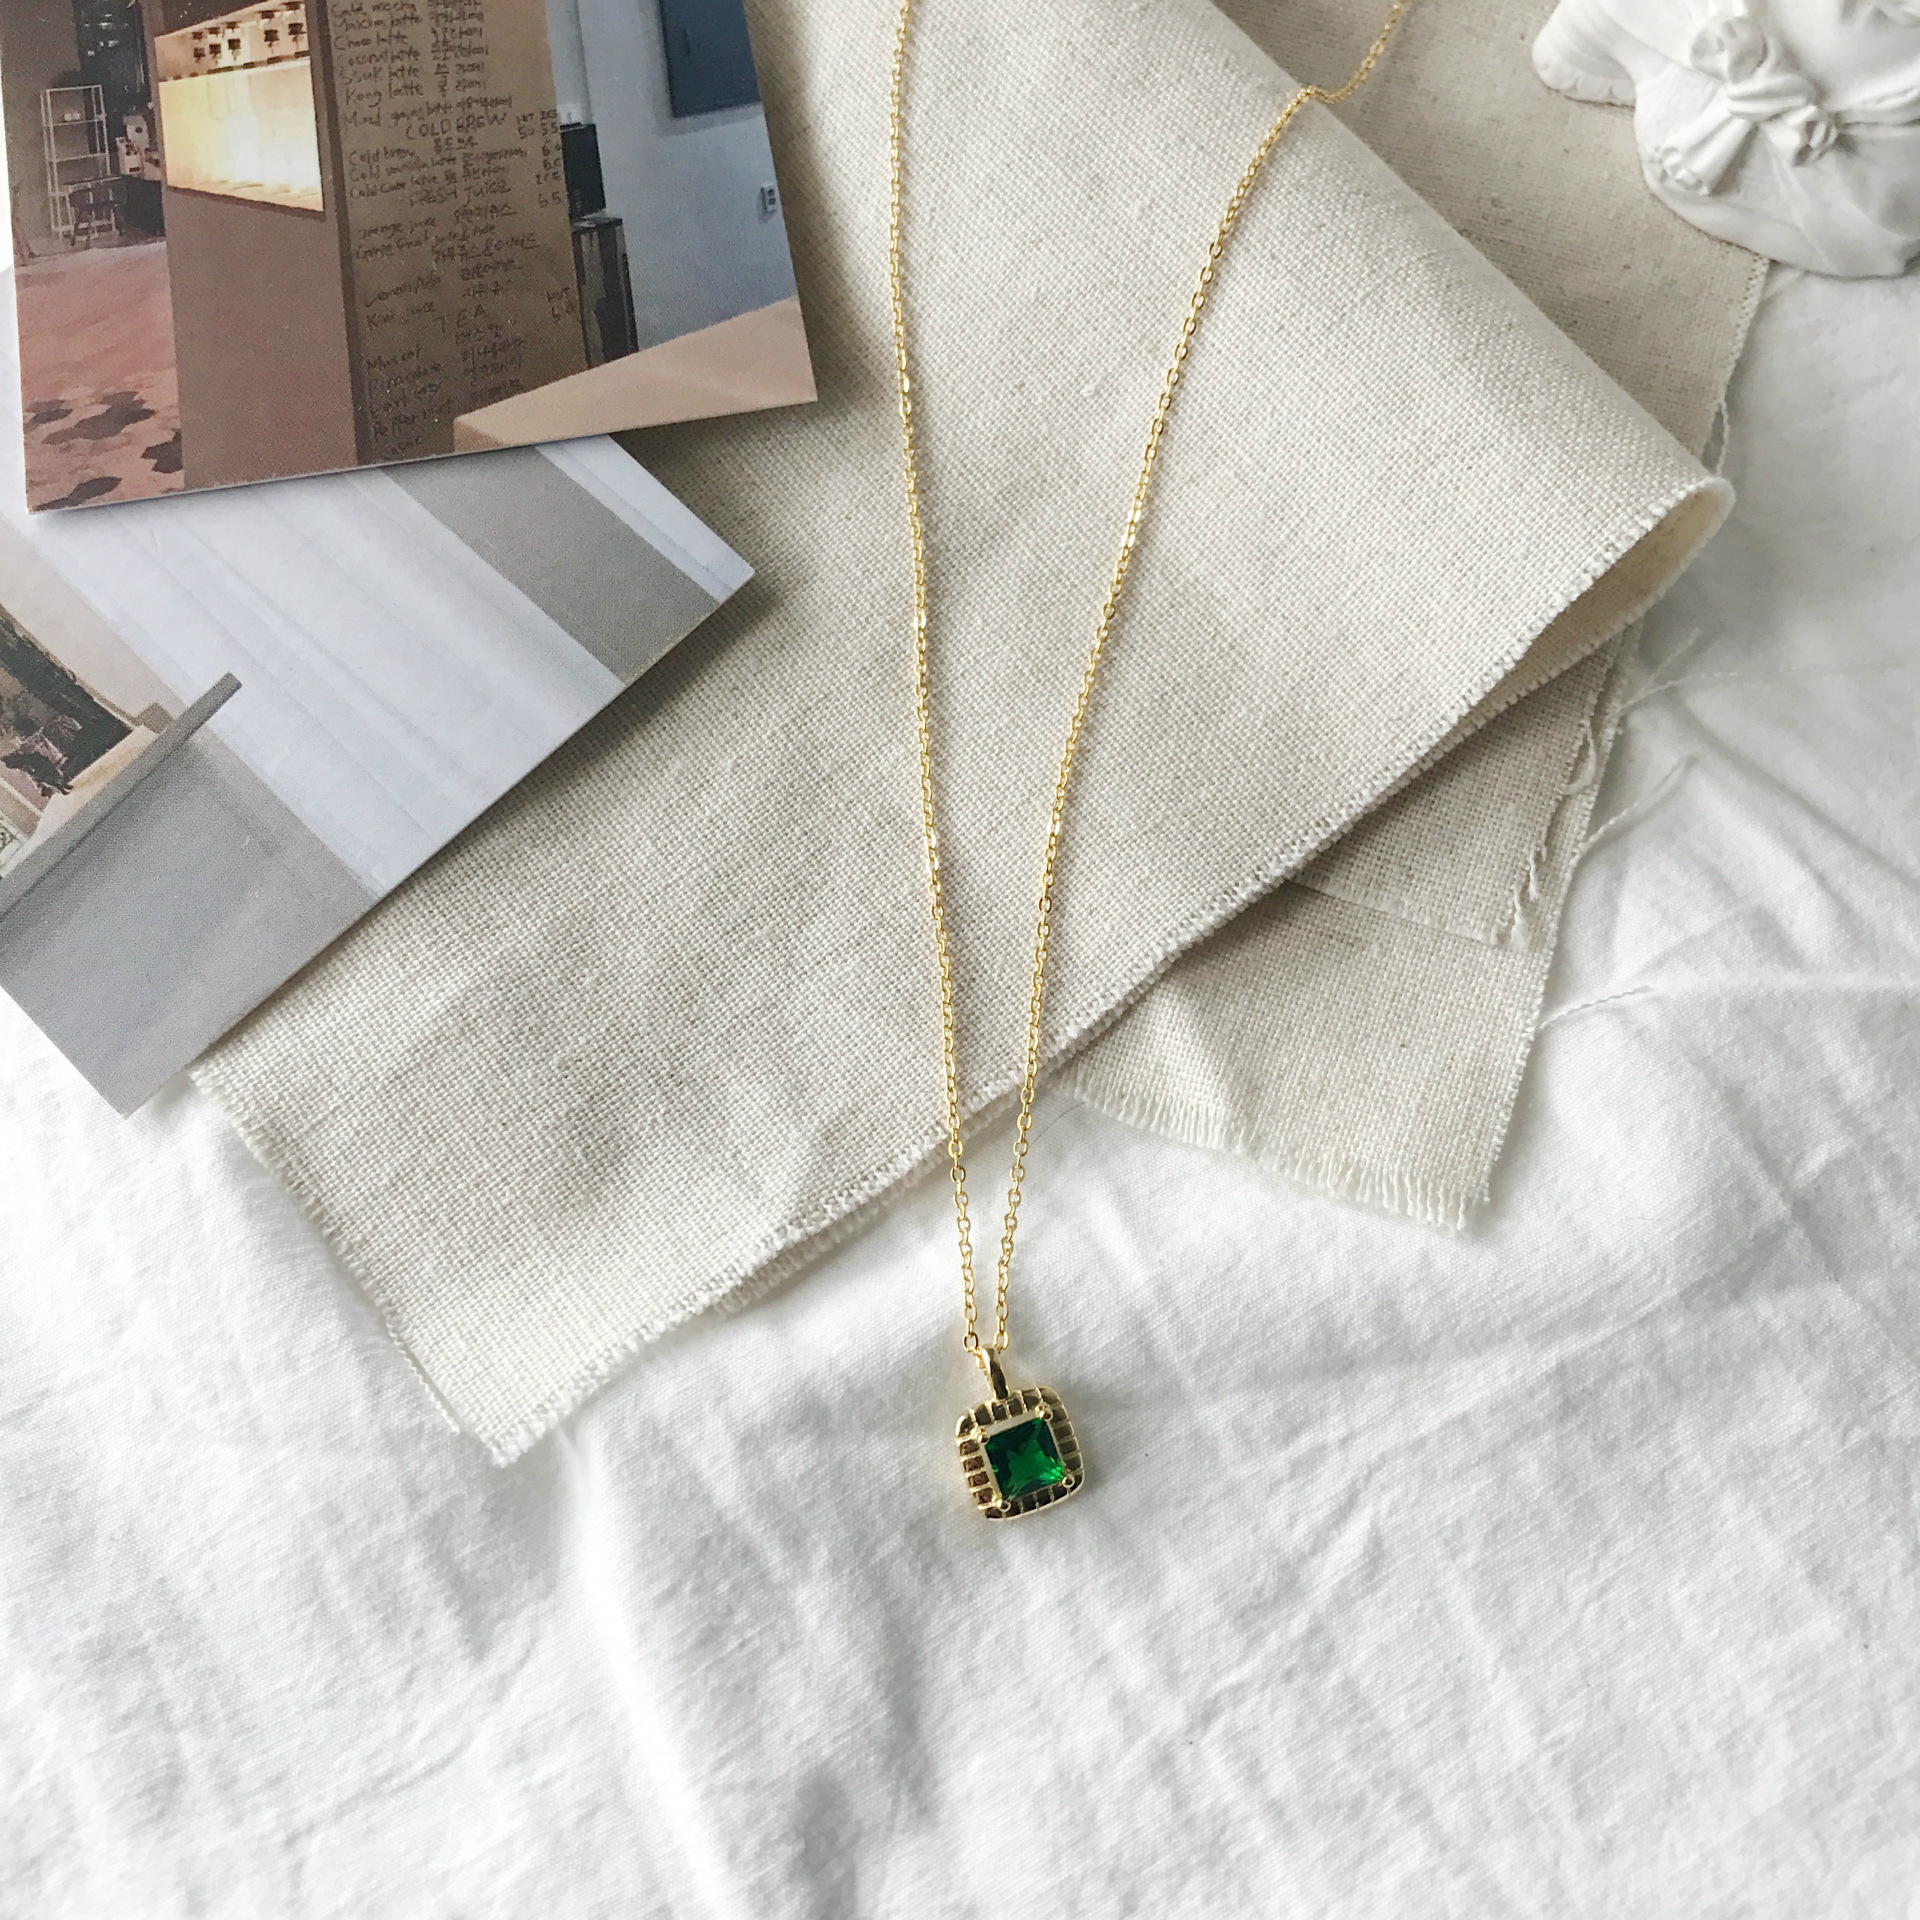 PANSYSEN Rose Gold Color Emerald Gemstone Necklaces for Women Solid 925 Sterling Silver Jewelry Pendant Nacklace Party Gift in Necklaces from Jewelry Accessories